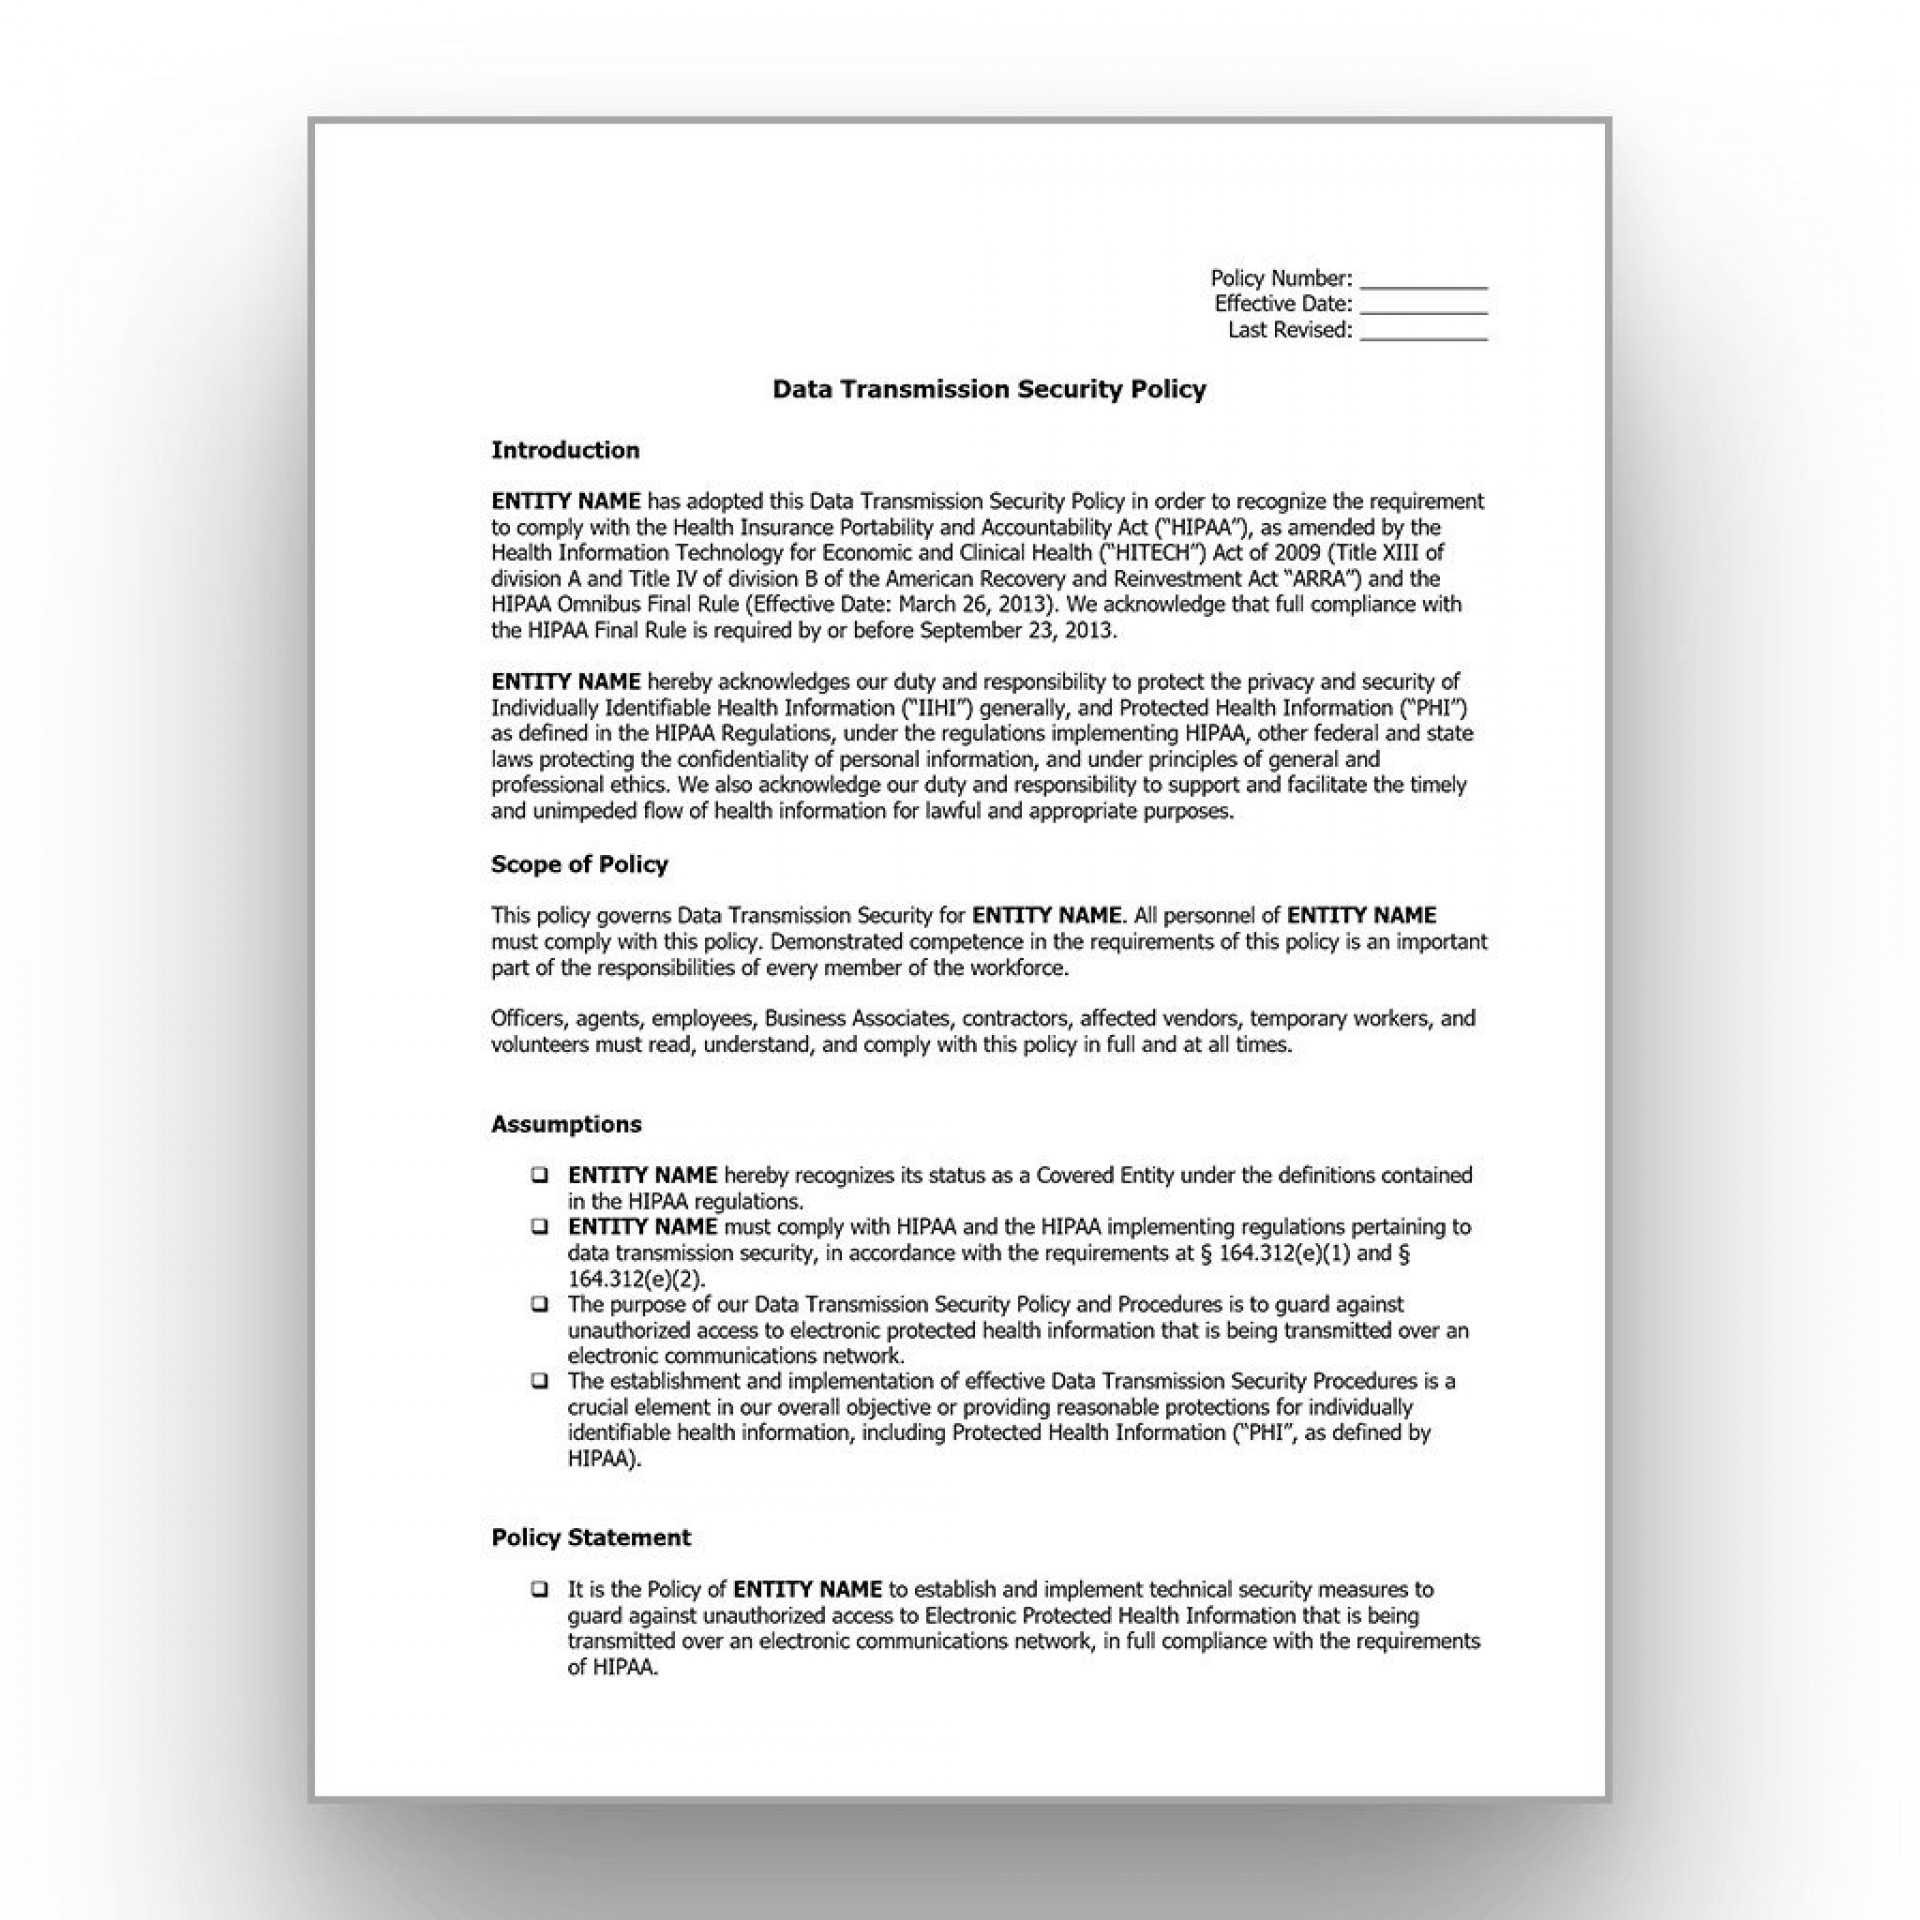 001 Stirring Information Security Policy Template Image  It Sample Pdf Uk Gdpr For Small Busines Australia1920